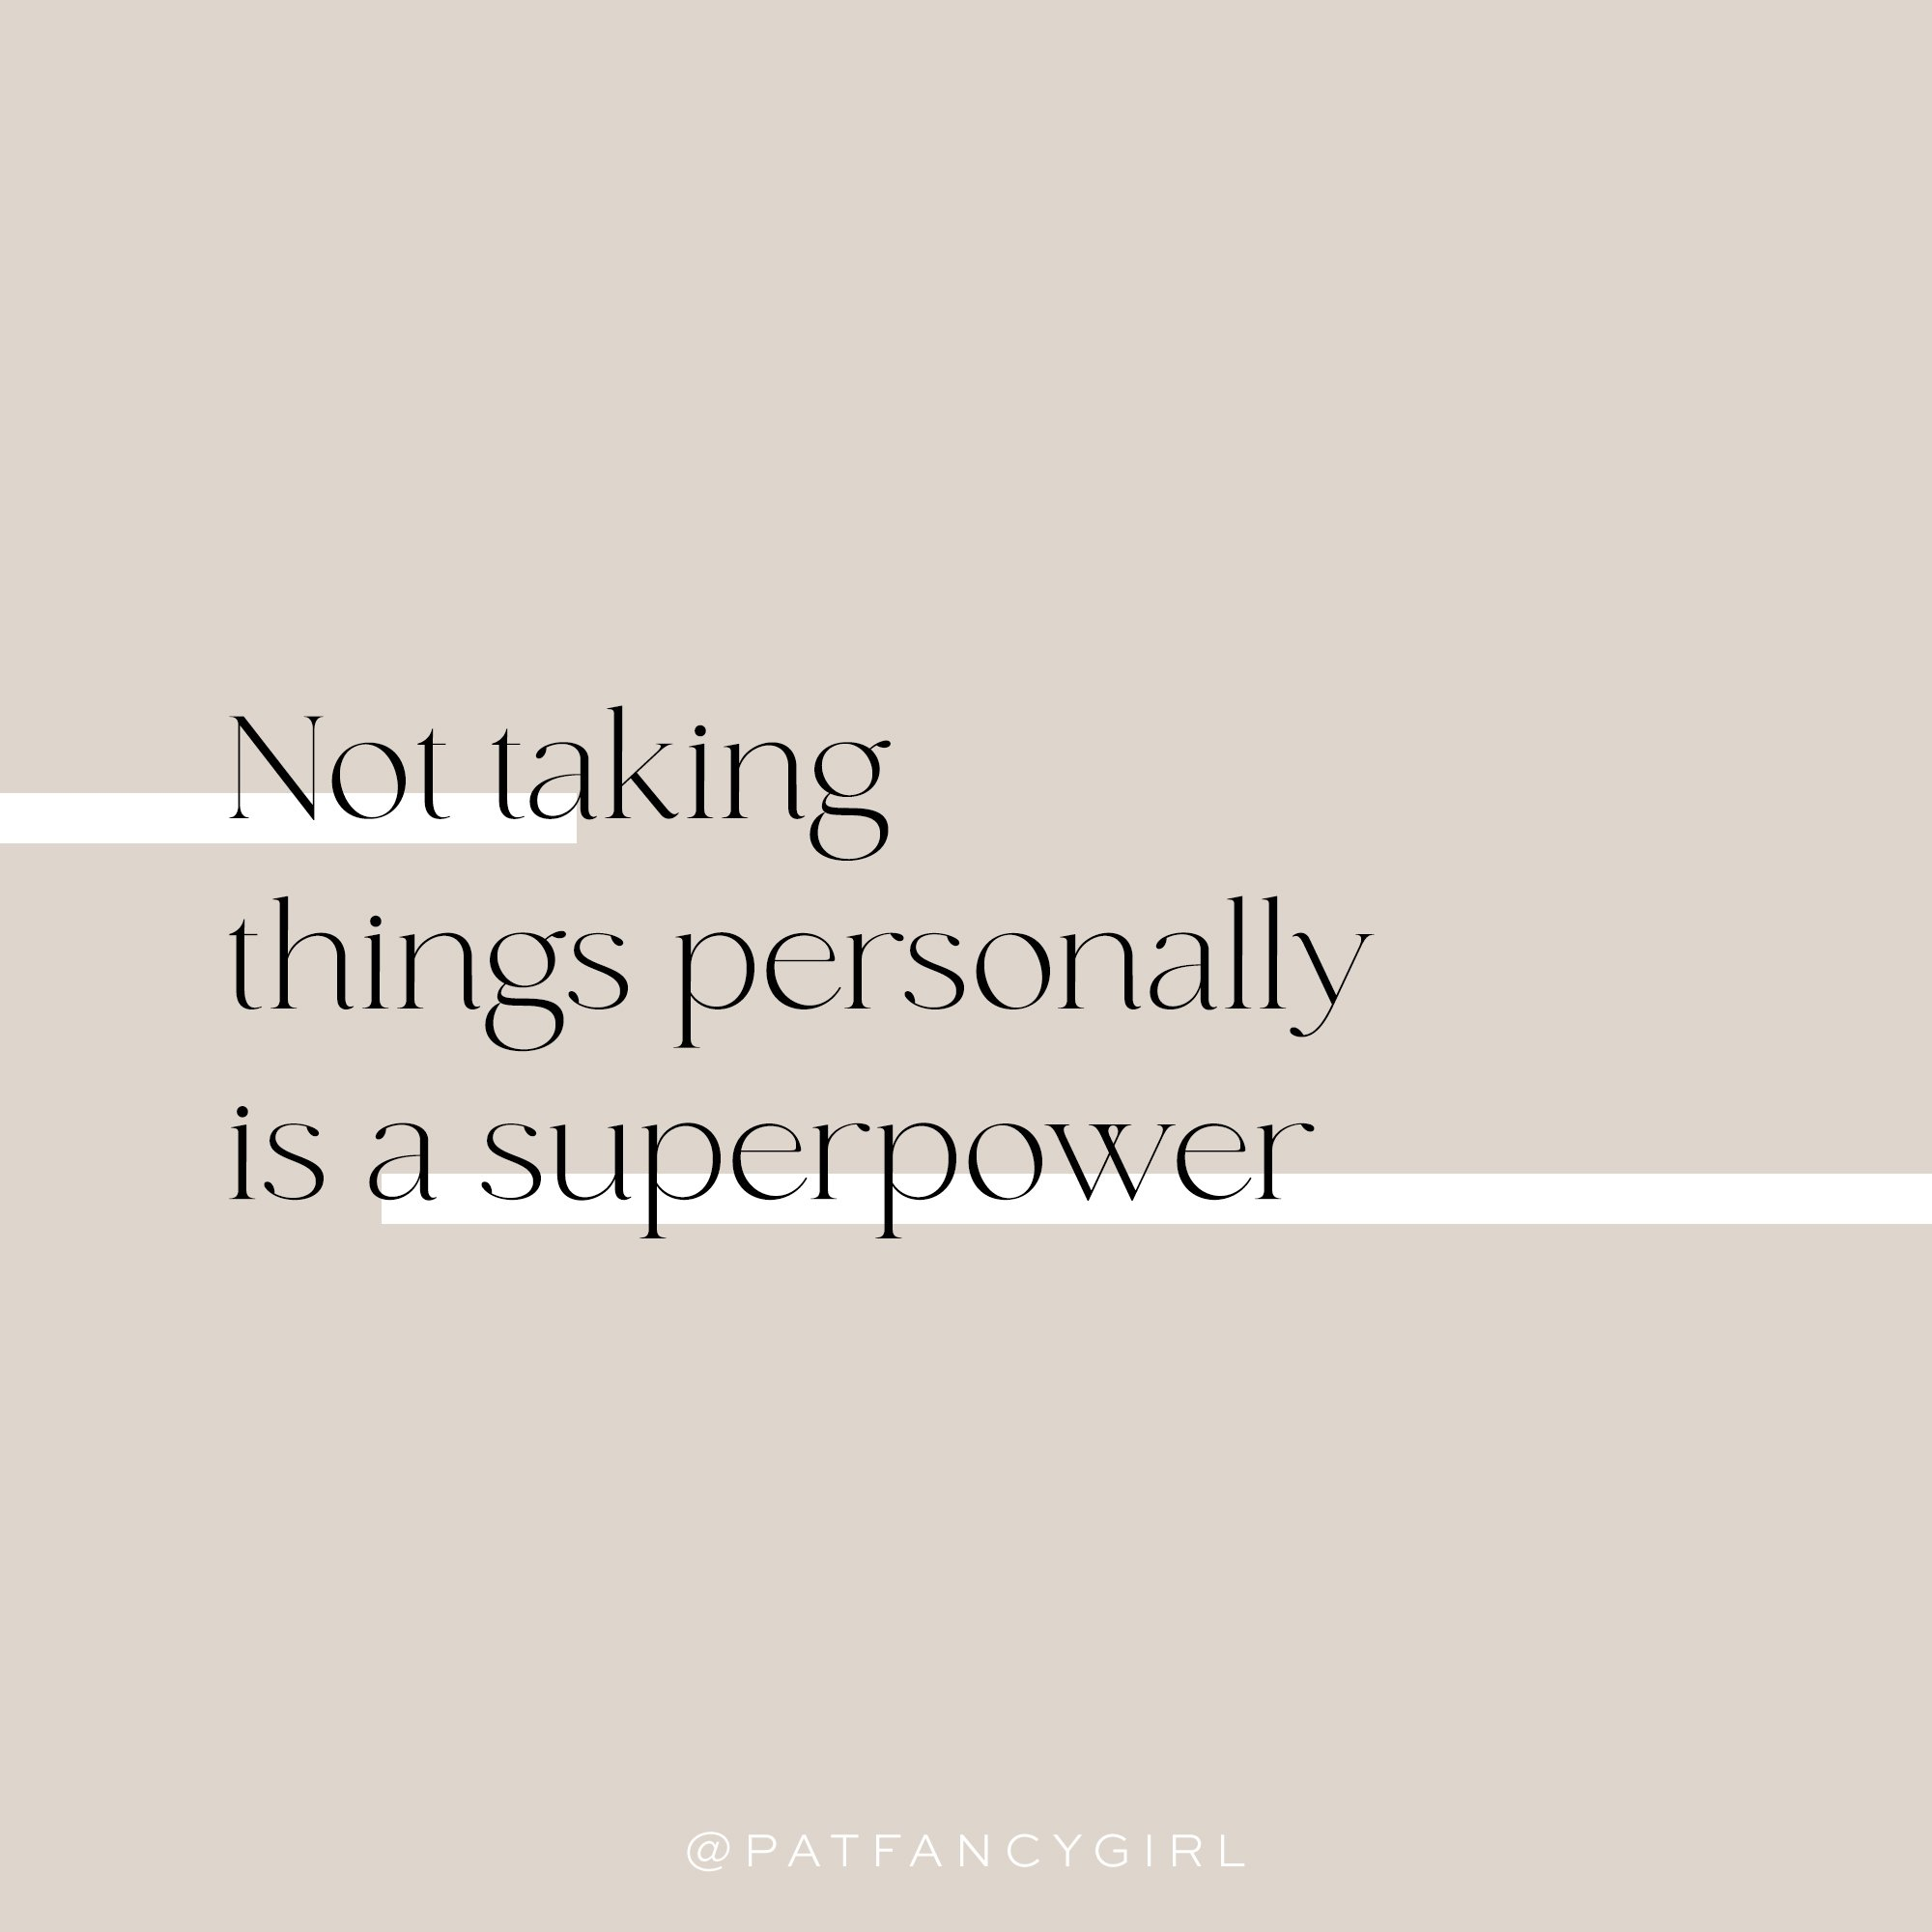 Not taking things personally is a superpower.